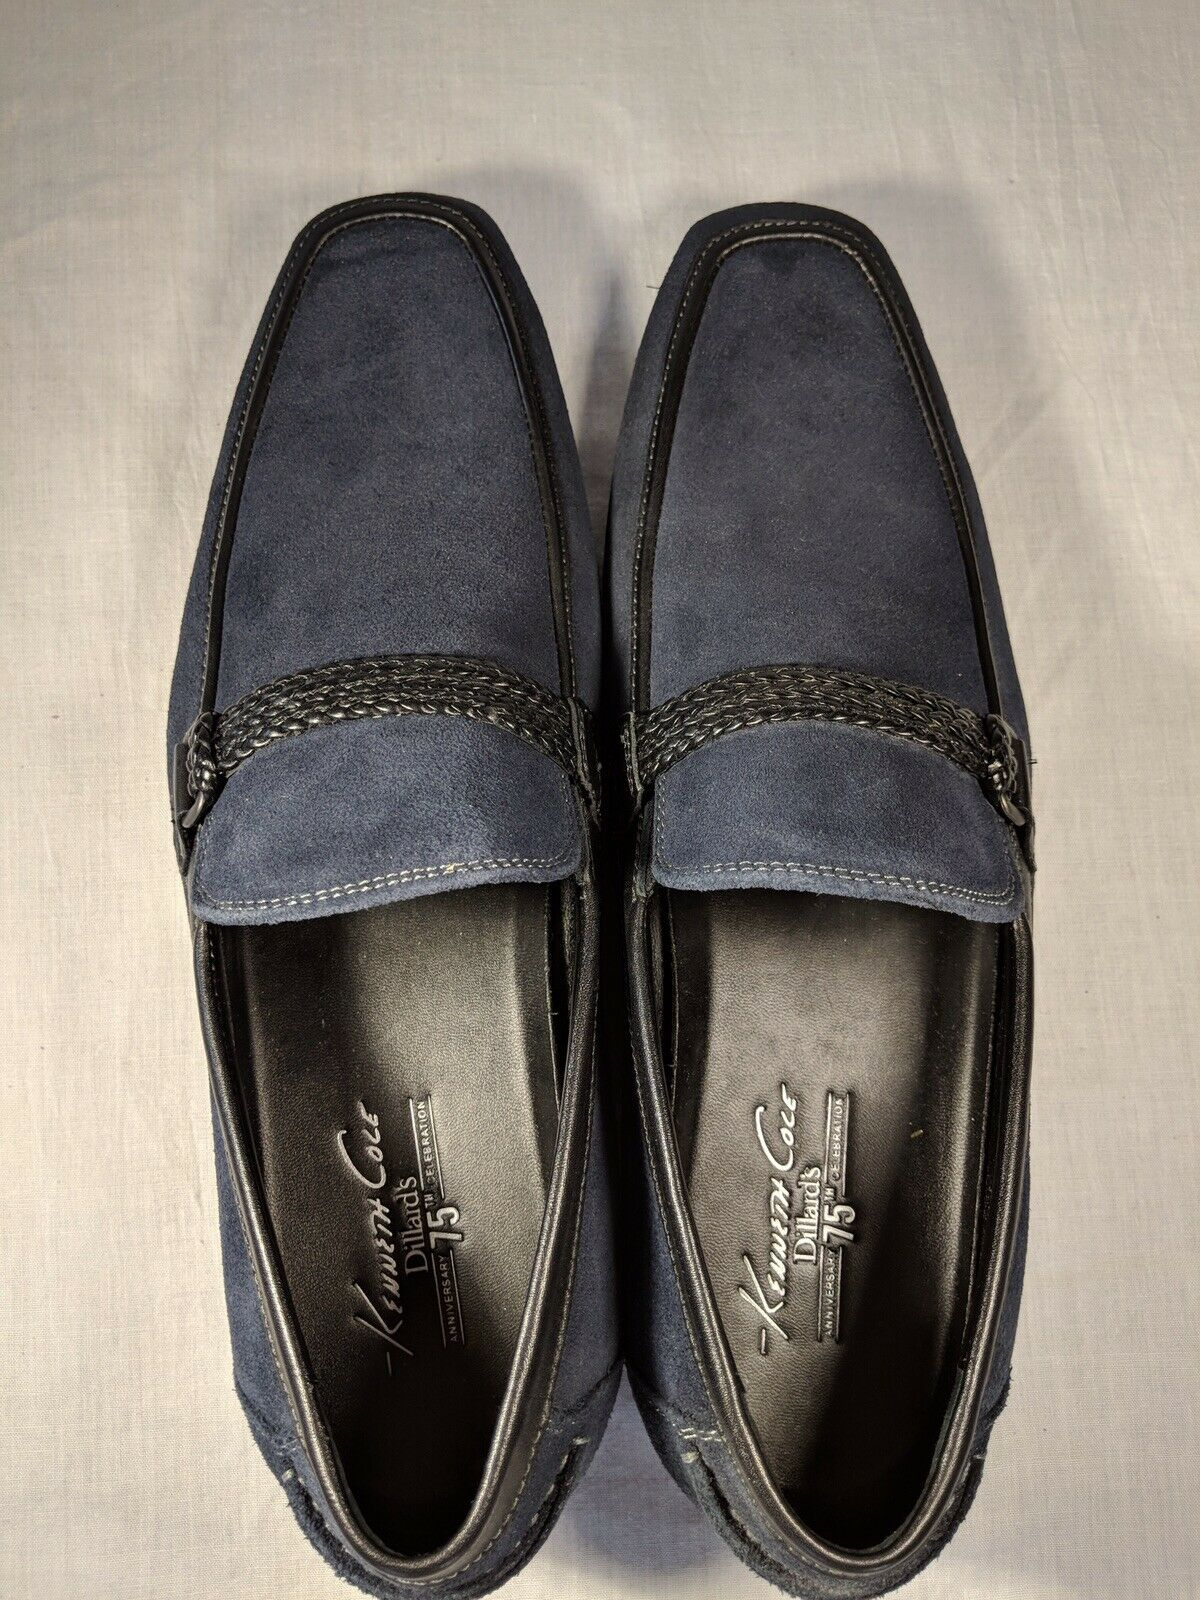 Kenneth Cole loafers Men's Big Band bluee size 11M with Upper Leather Material